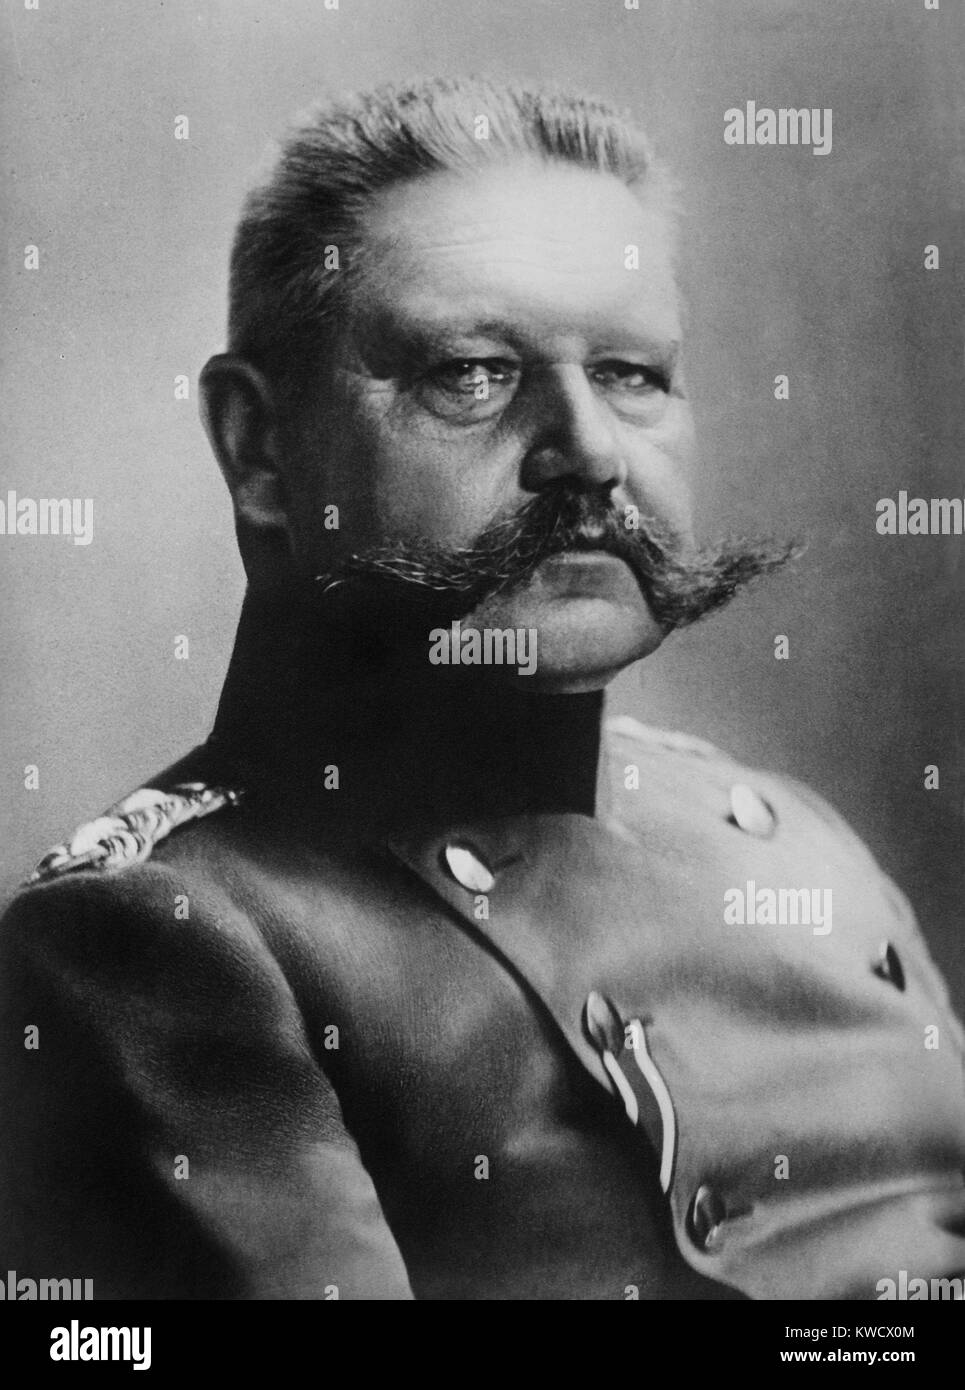 General Paul von Hindenburg, 1915, German military and defacto political leader during World War 1 (BSLOC_2017_1 - Stock Image